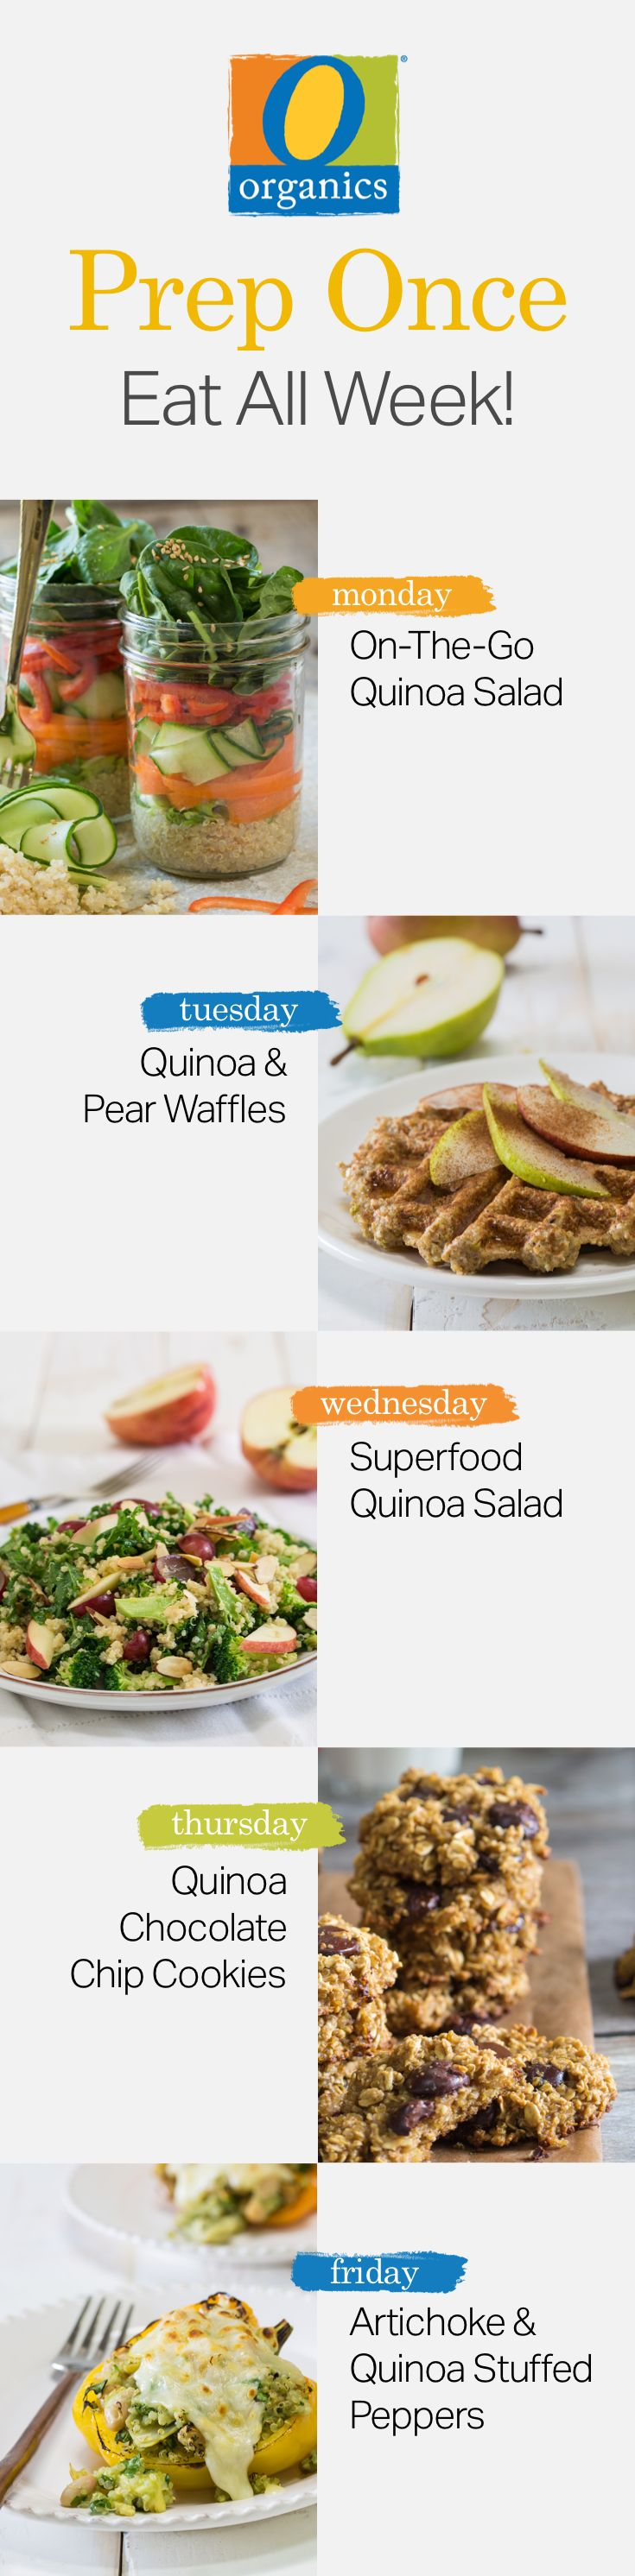 Prep your O Organics® quinoa once and enjoy five nights of healthy and delicious meals!